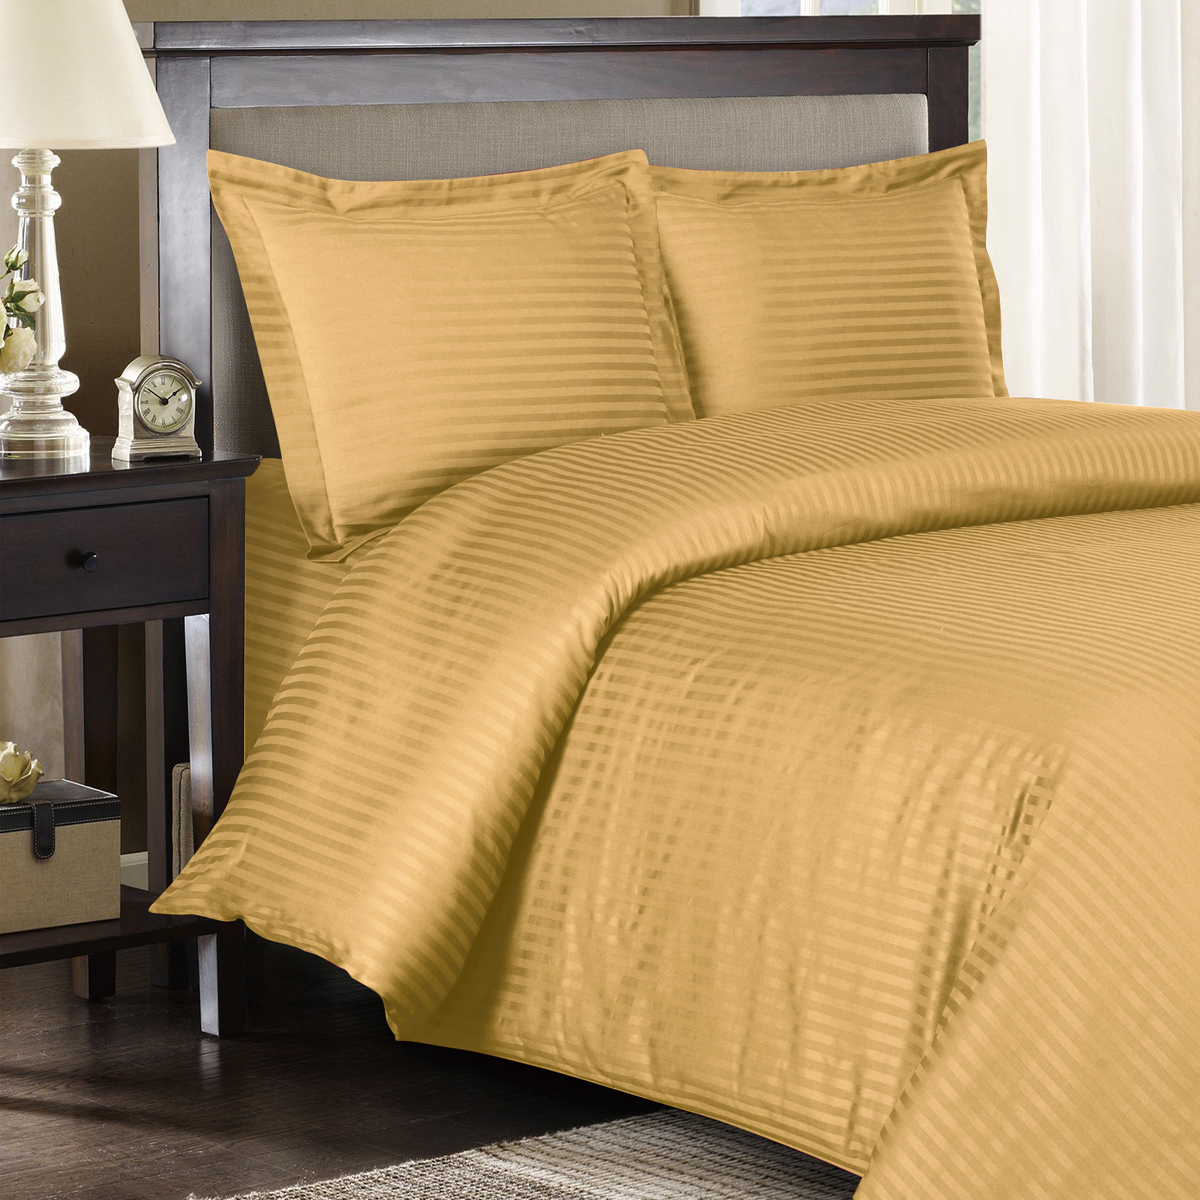 600 Thread Count Duvet Cover Set 100% Cotton Sateen Damask Striped - Full/Queen - White